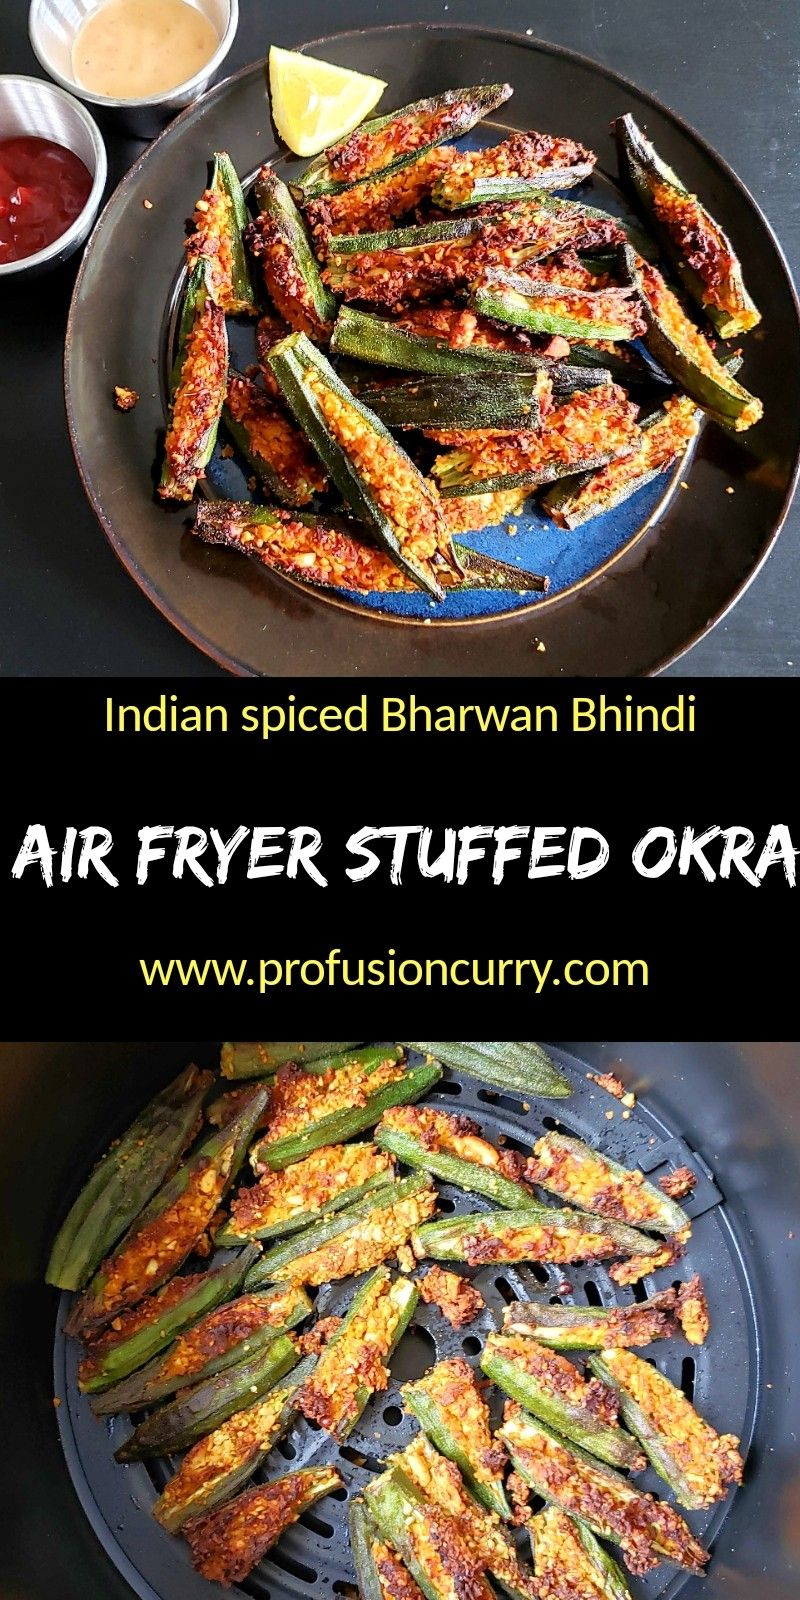 Stuffed Okra Bharwa Bhindi Recipe in 2020 Recipes